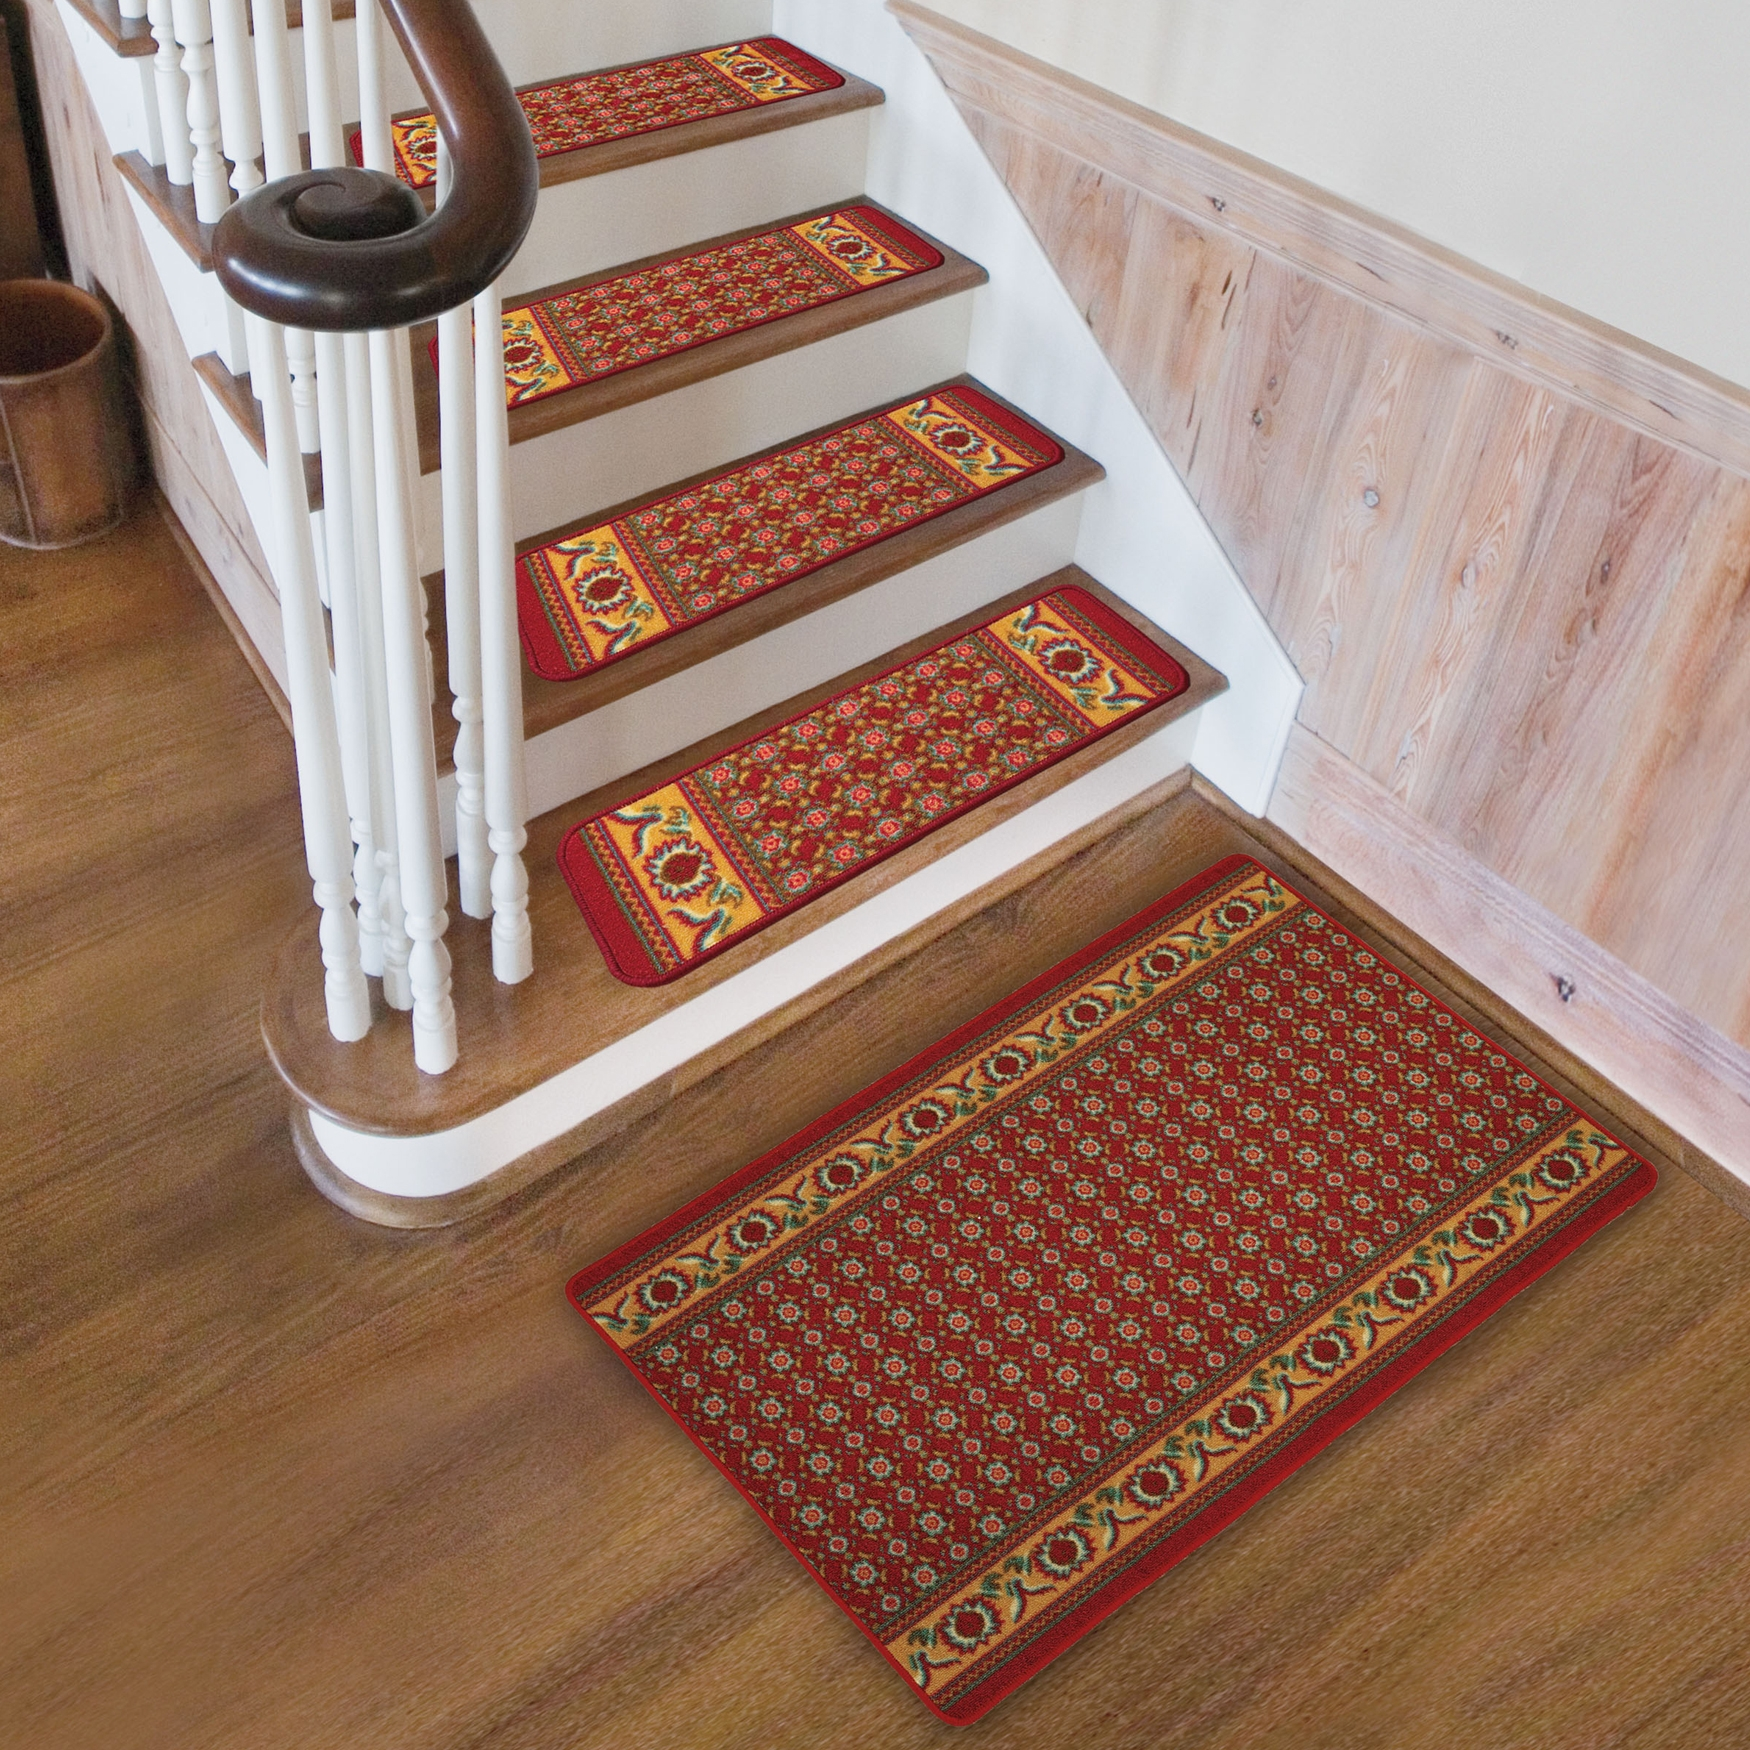 Rugs Carpet Elegant Carpet Stair Treads With Classic Pattern Regarding Stair Treads On Carpet (Image 11 of 15)